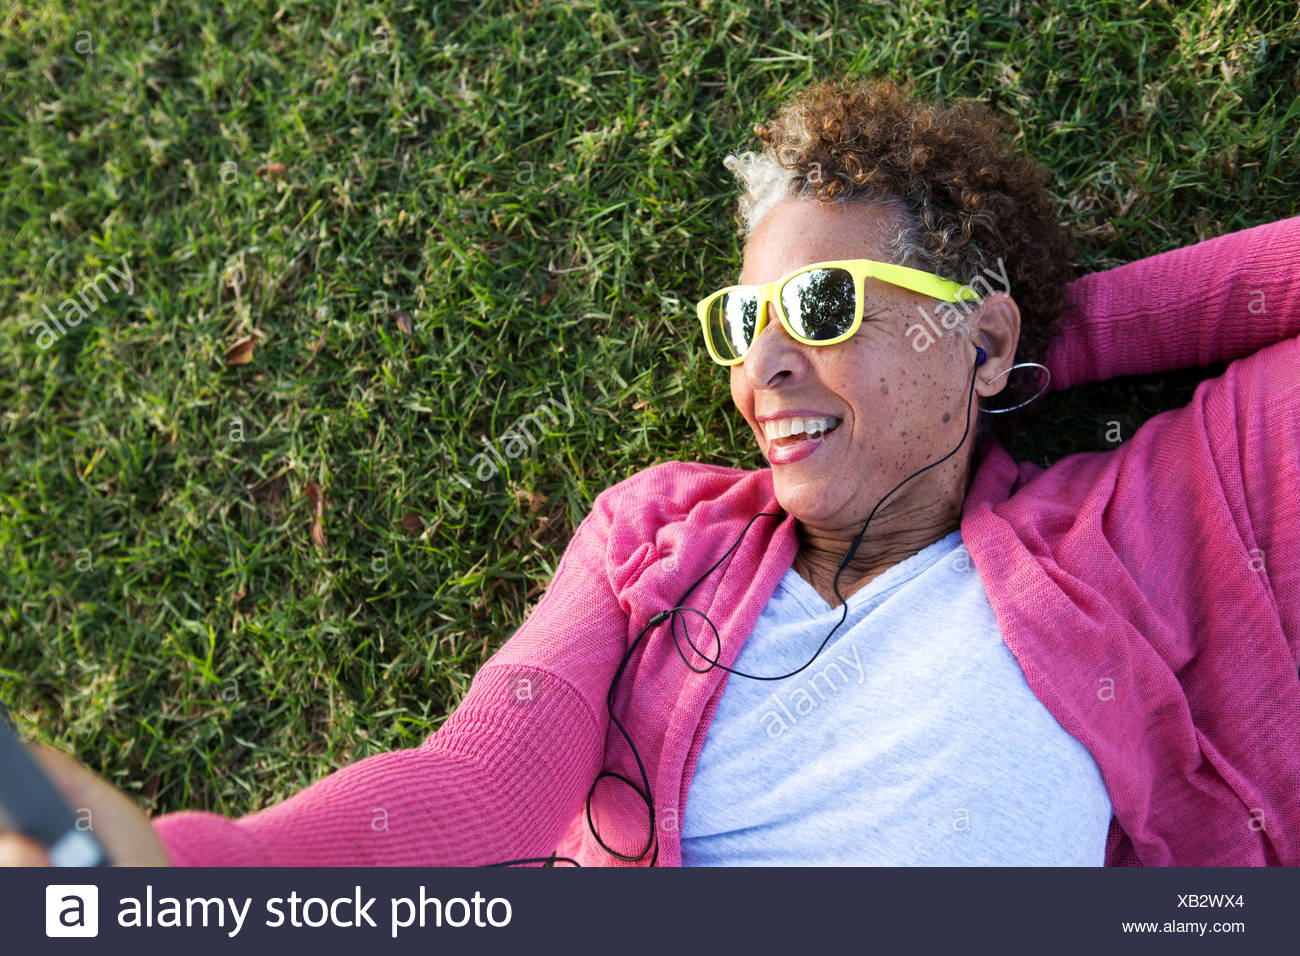 Portrait of senior woman lying on grass wearing sunglasses Banque D'Images